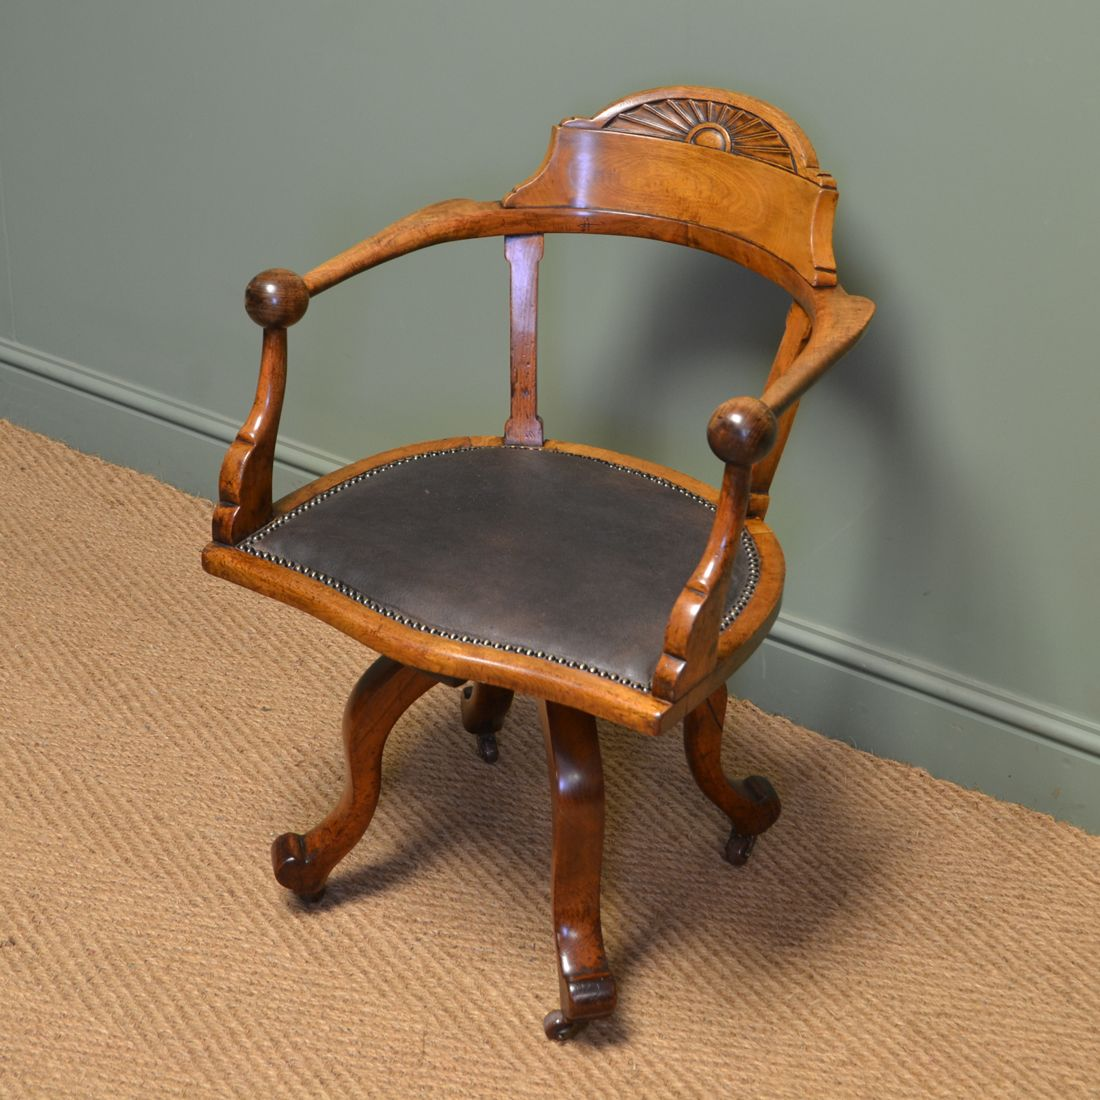 Quality Victorian Walnut Swivel Antique Office Chair Desk Chair Antique Desk Chair Antique Chairs Chair